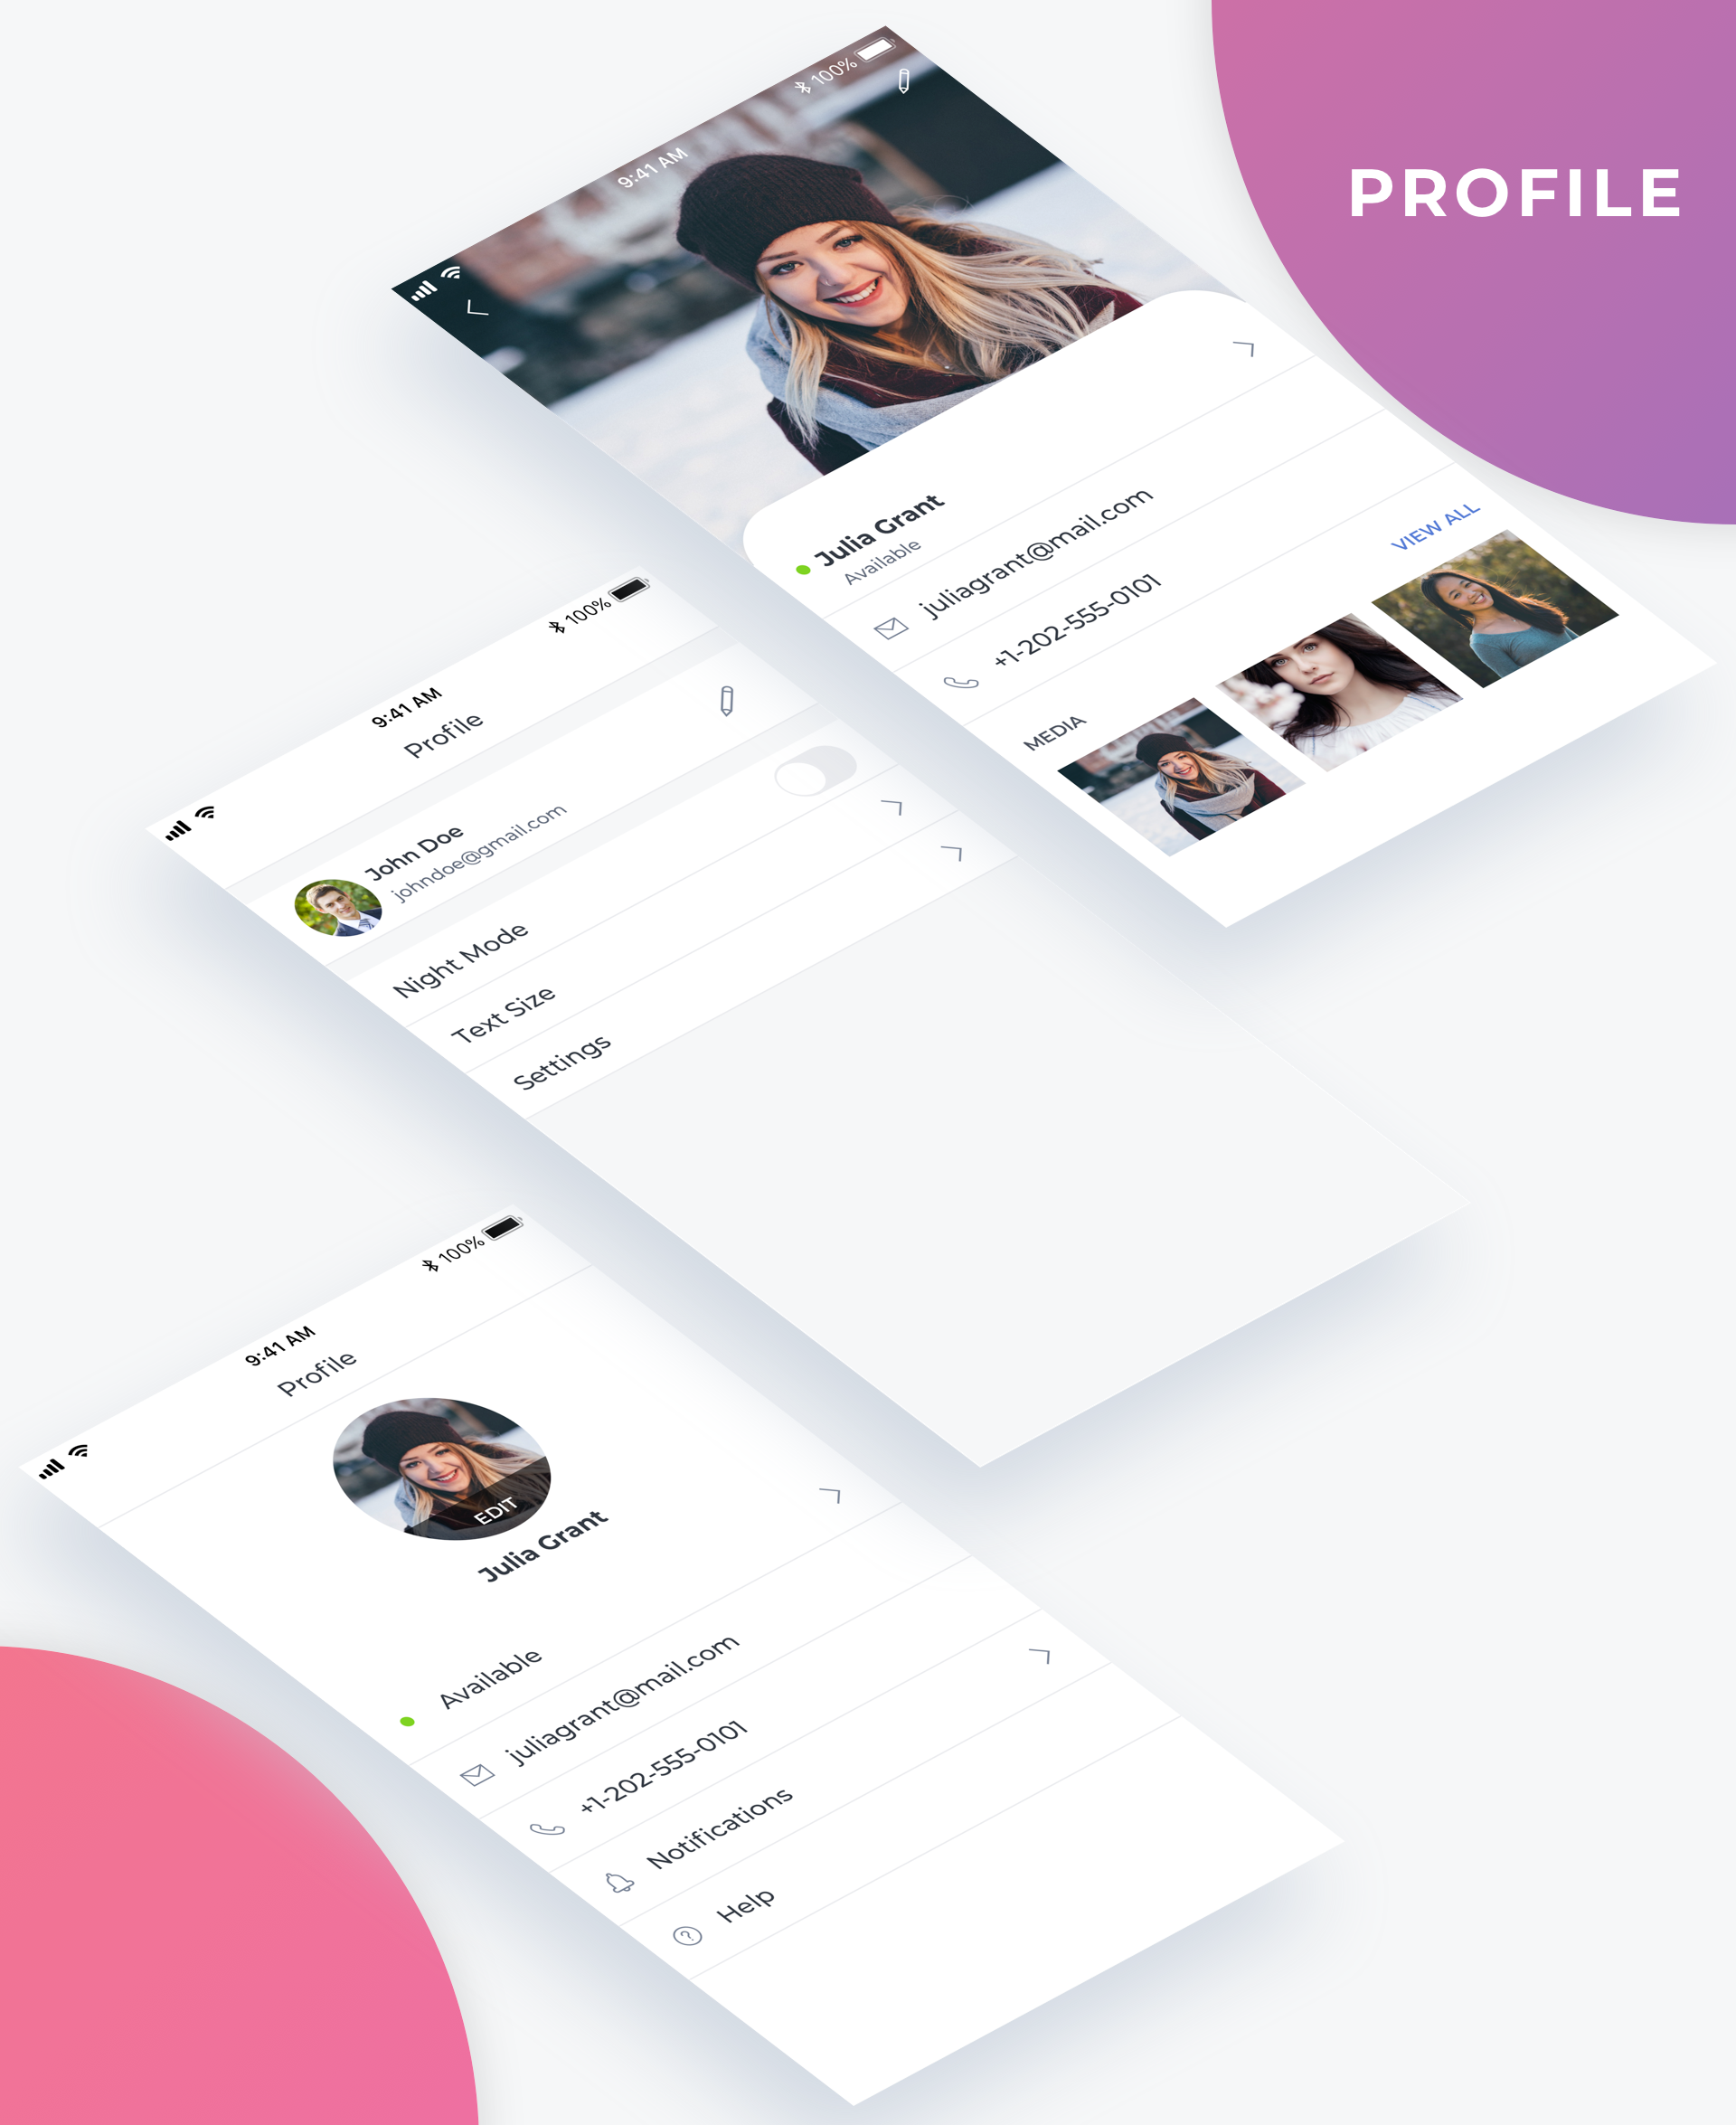 Essential UI Kit - Profile Page